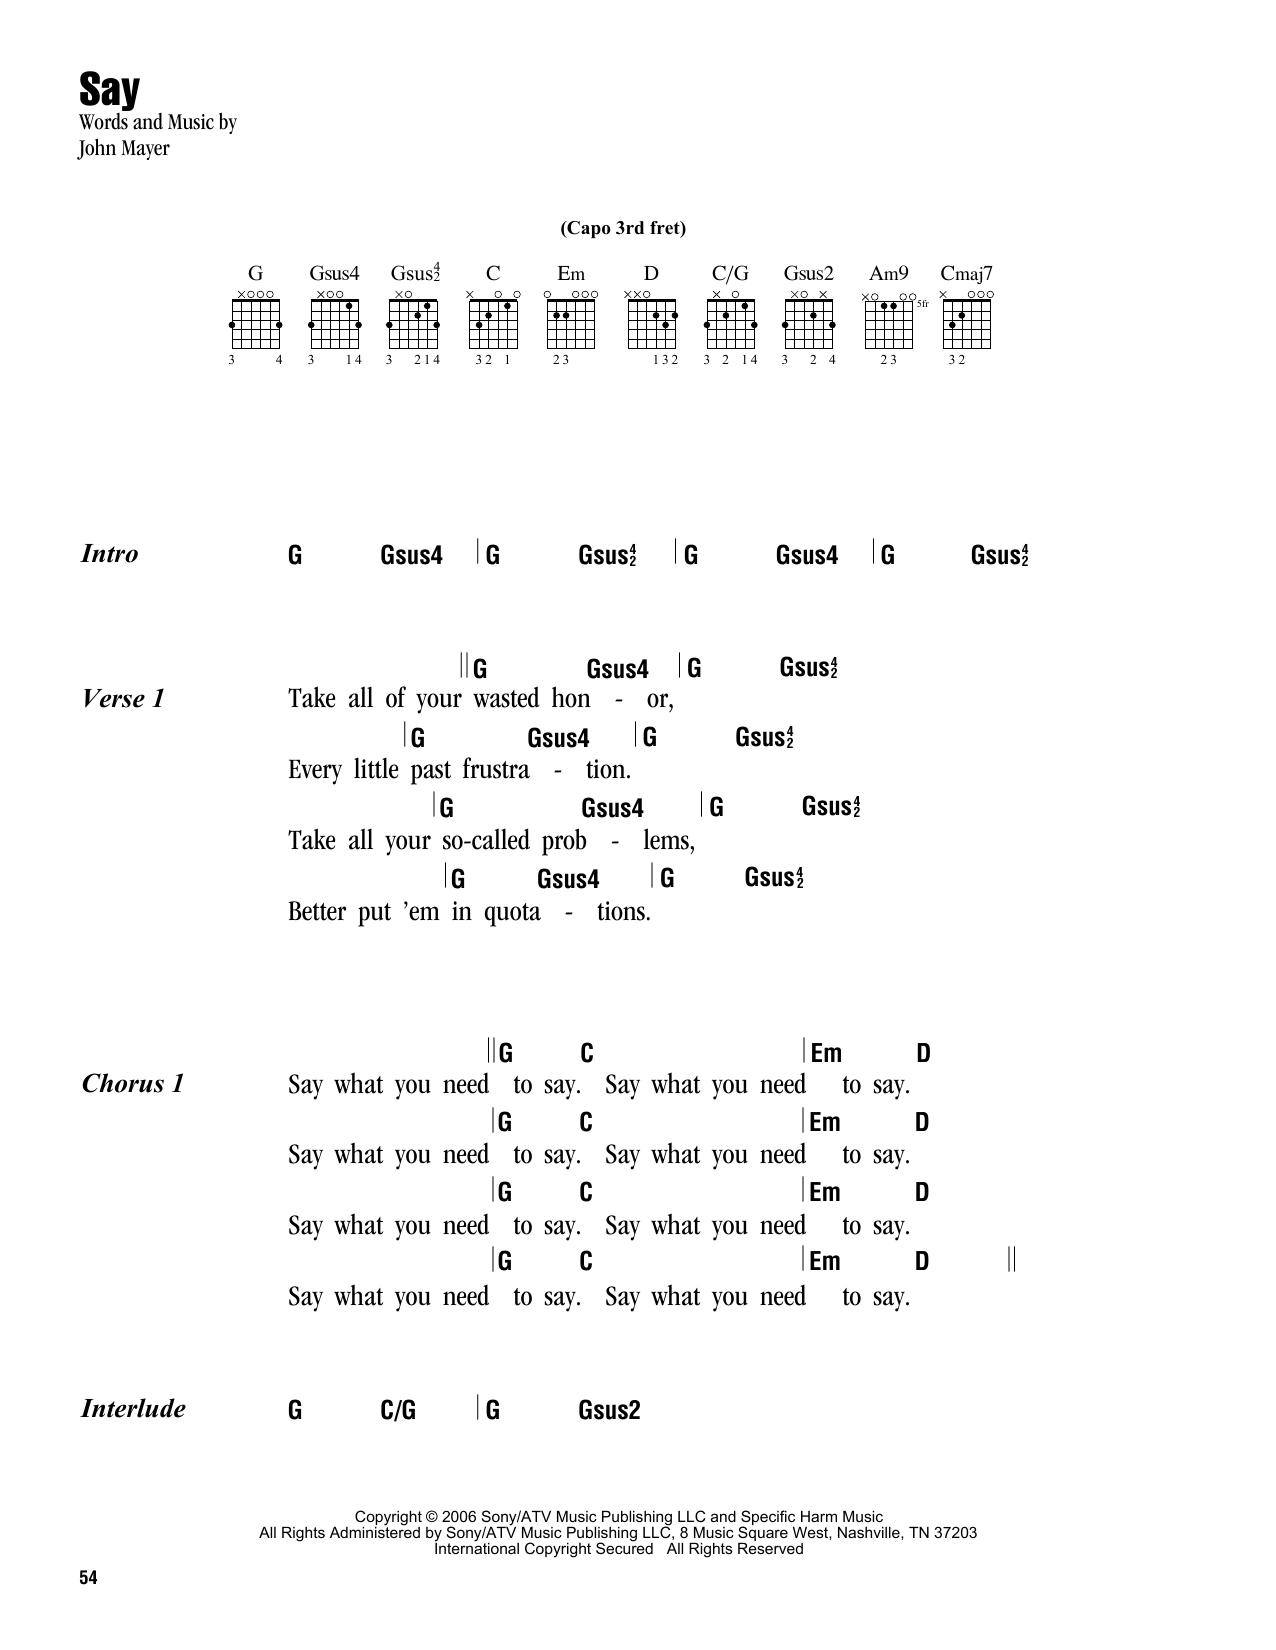 Say sheet music by John Mayer (Lyrics u0026 Chords u2013 162944)